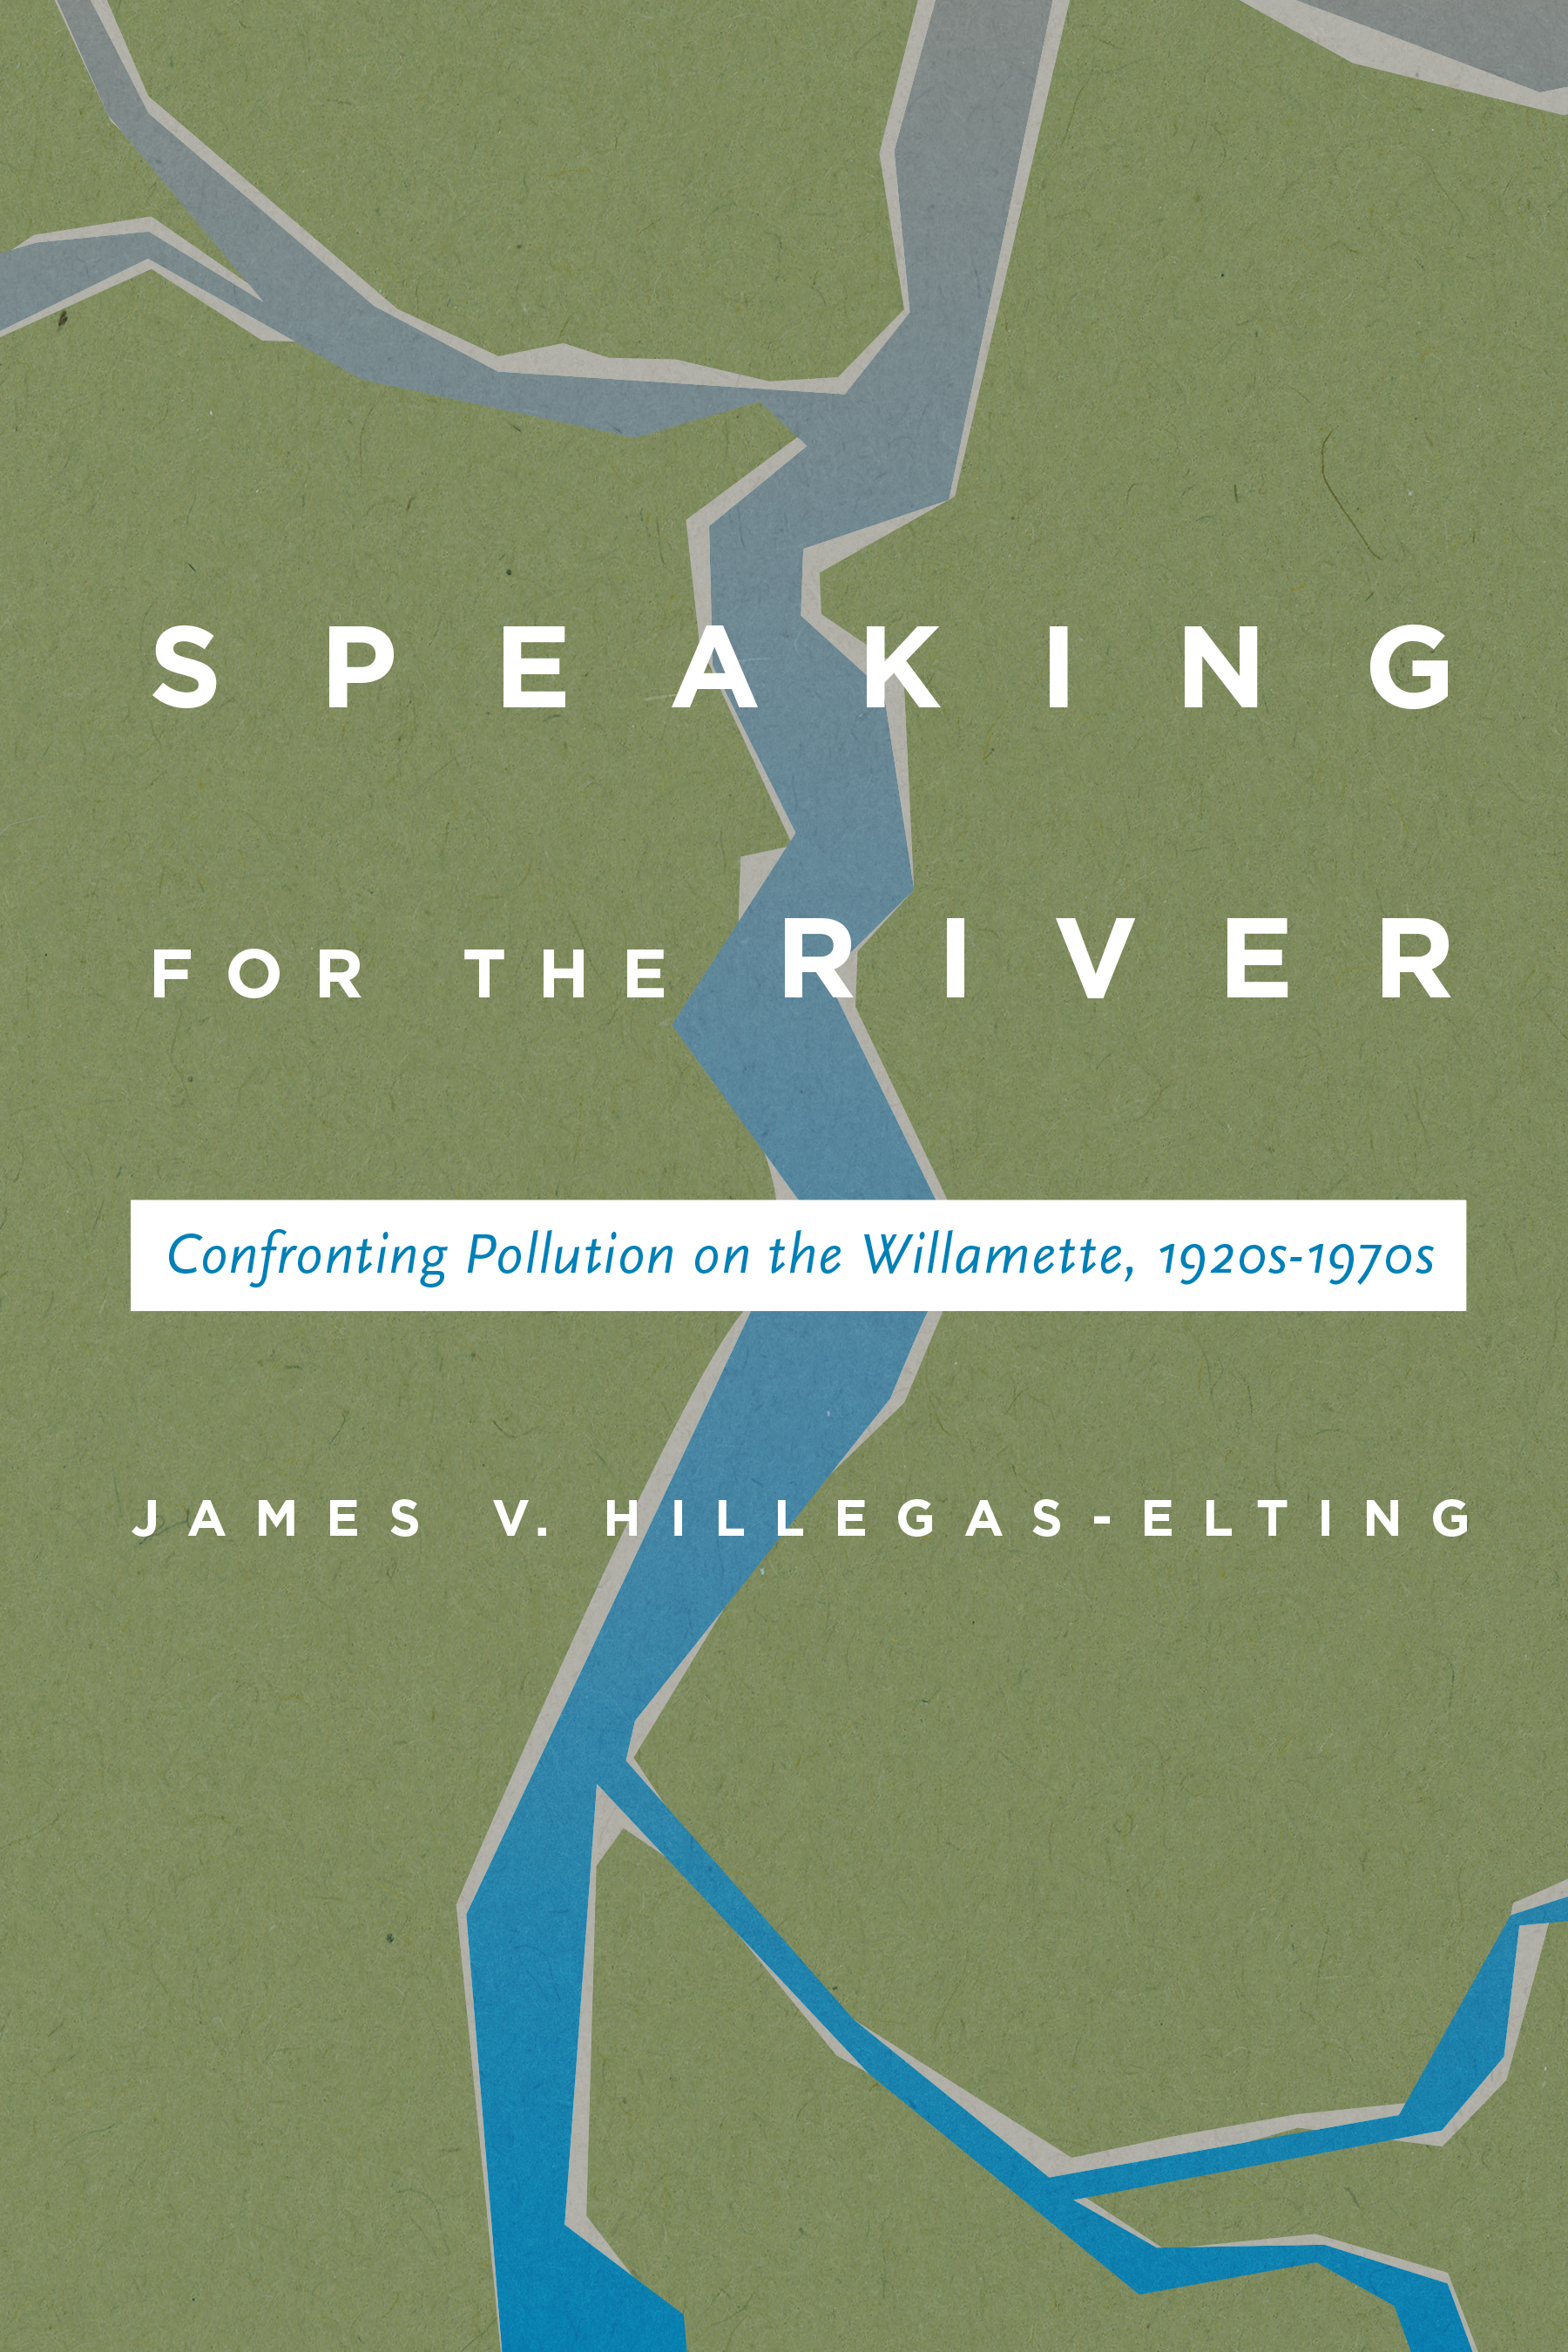 Speaking for the River by James V. Hillegas-Elting